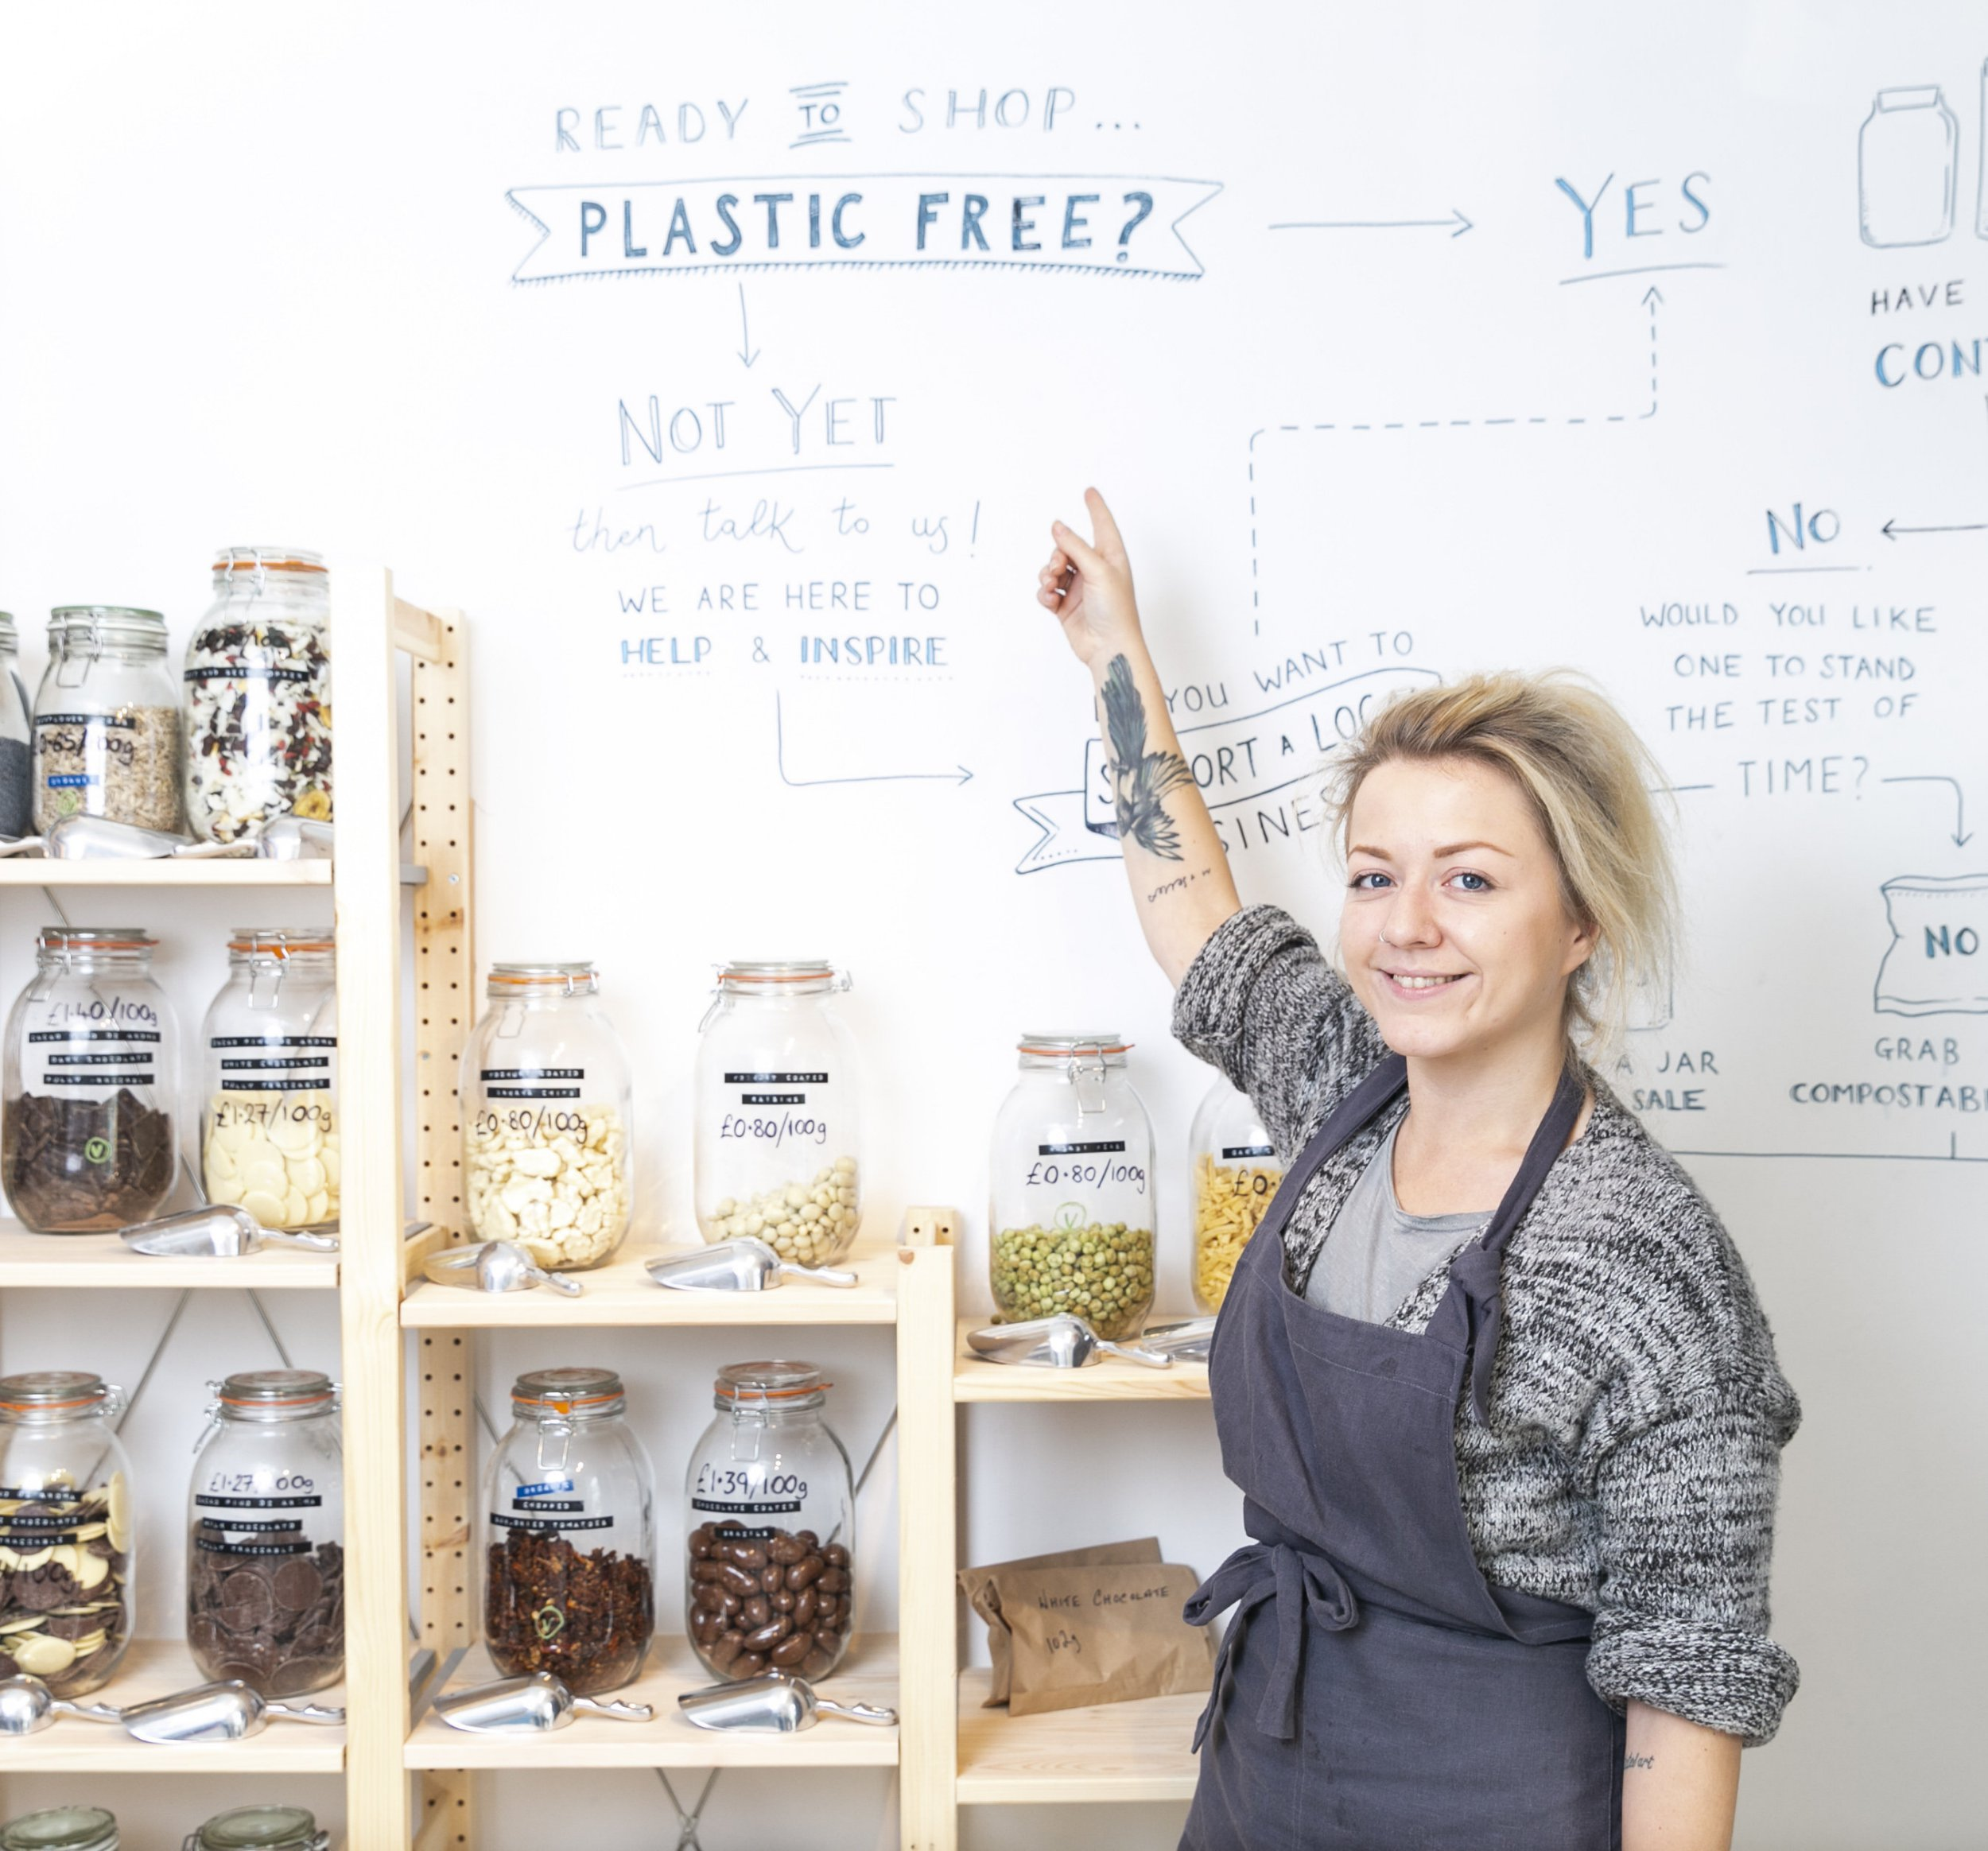 Abbie Sellers (26), of Ramsbottom in Greater Manchester, has opened a plastic free shop. Abbie opened her shop on the 1st September 2018. See Ross Parry story RPYPLASTIC. September 17, 2018.